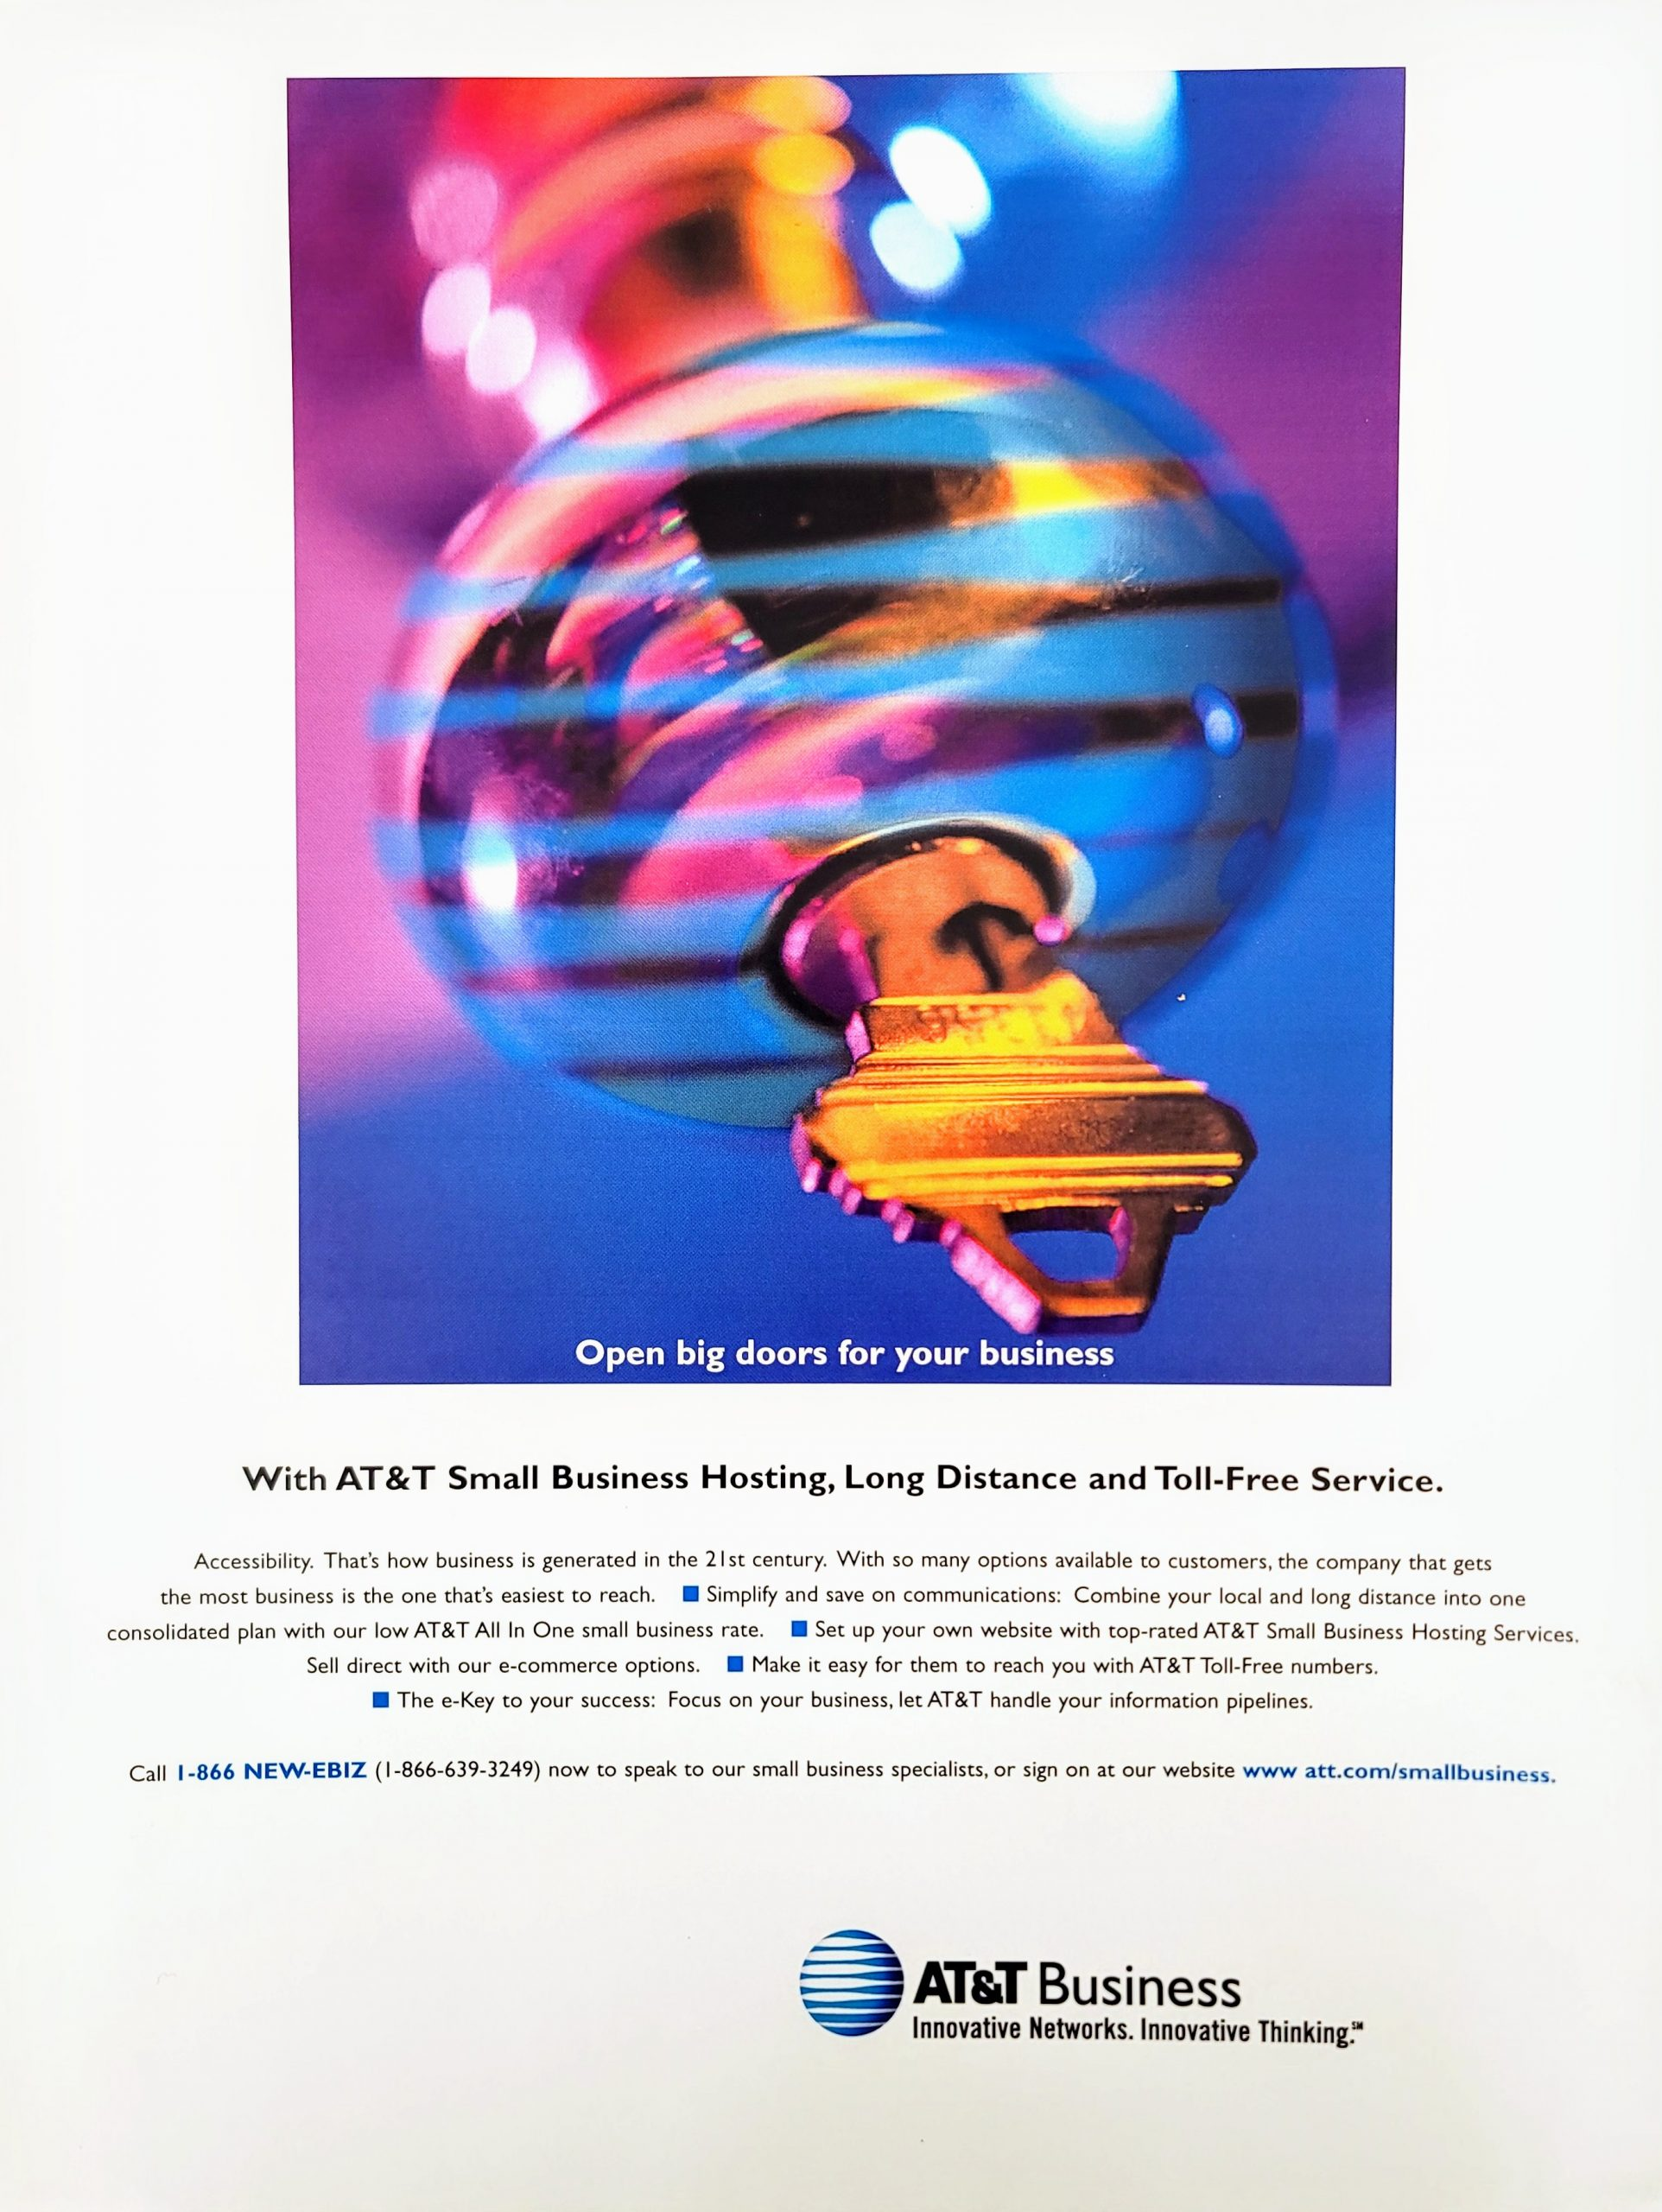 at&t business_ad_key_2